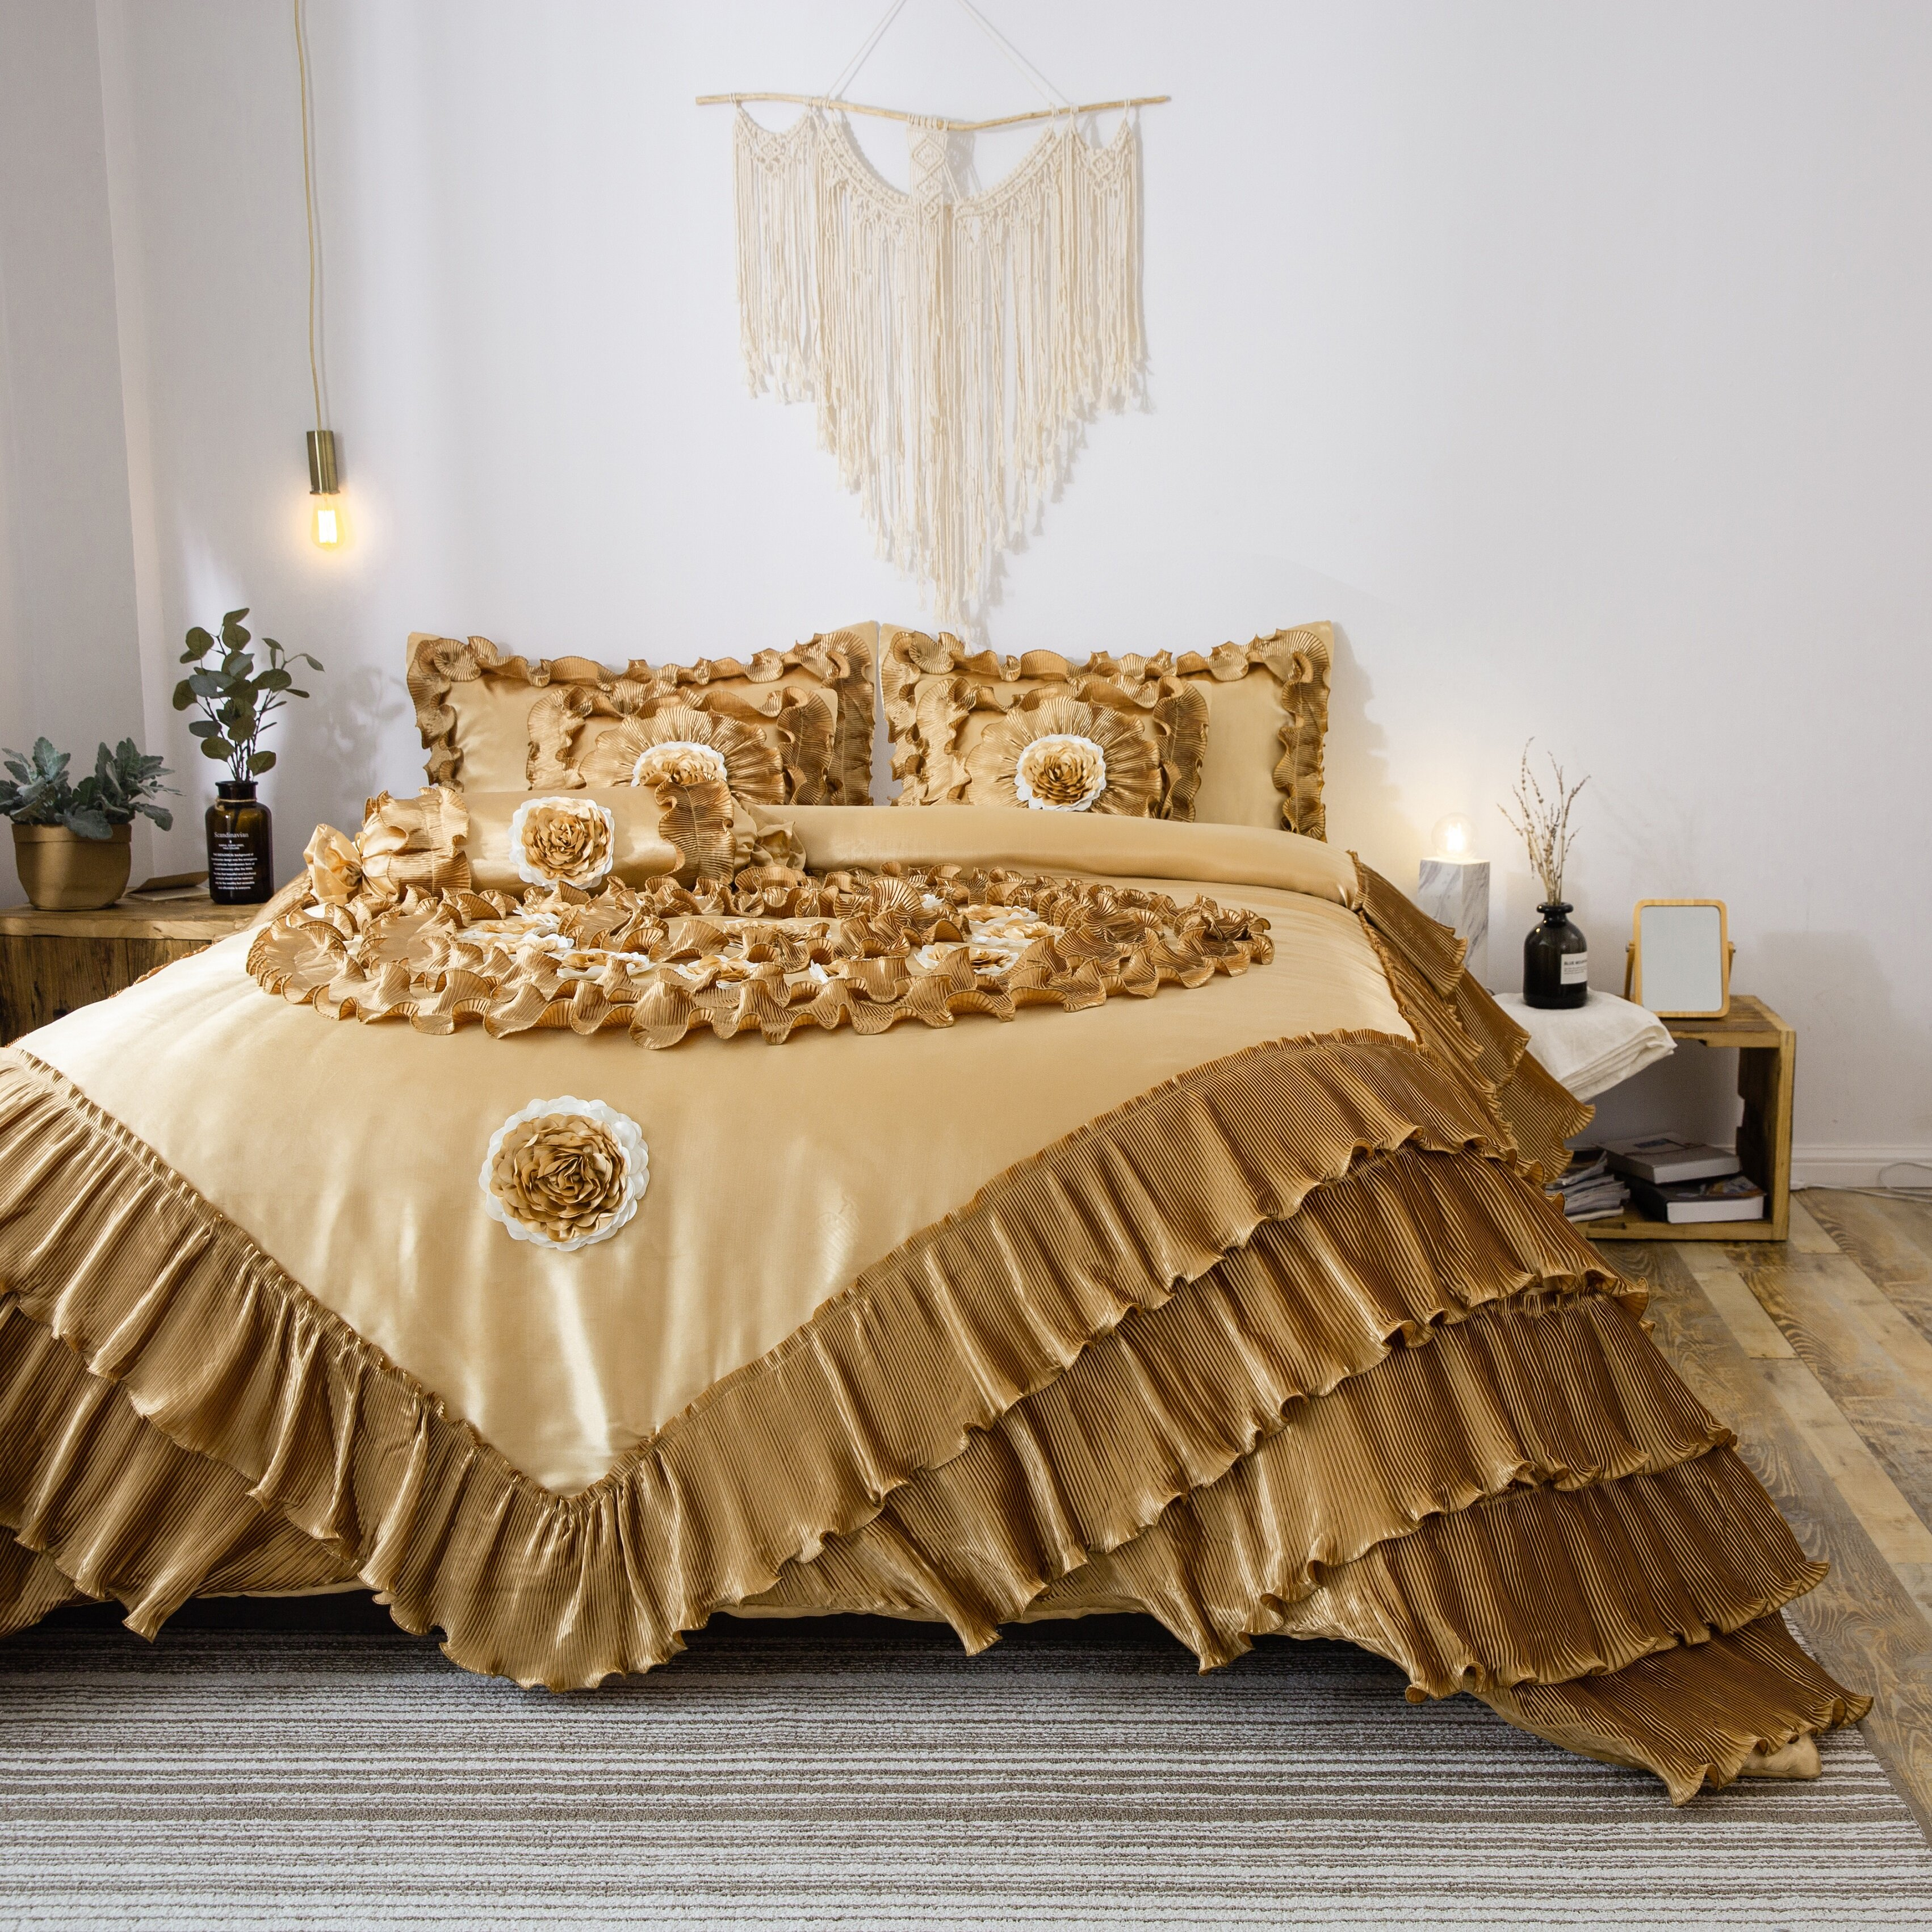 Bedspread Throws Pillow Sham Polyester Luxury Comforter Set For Double King Size